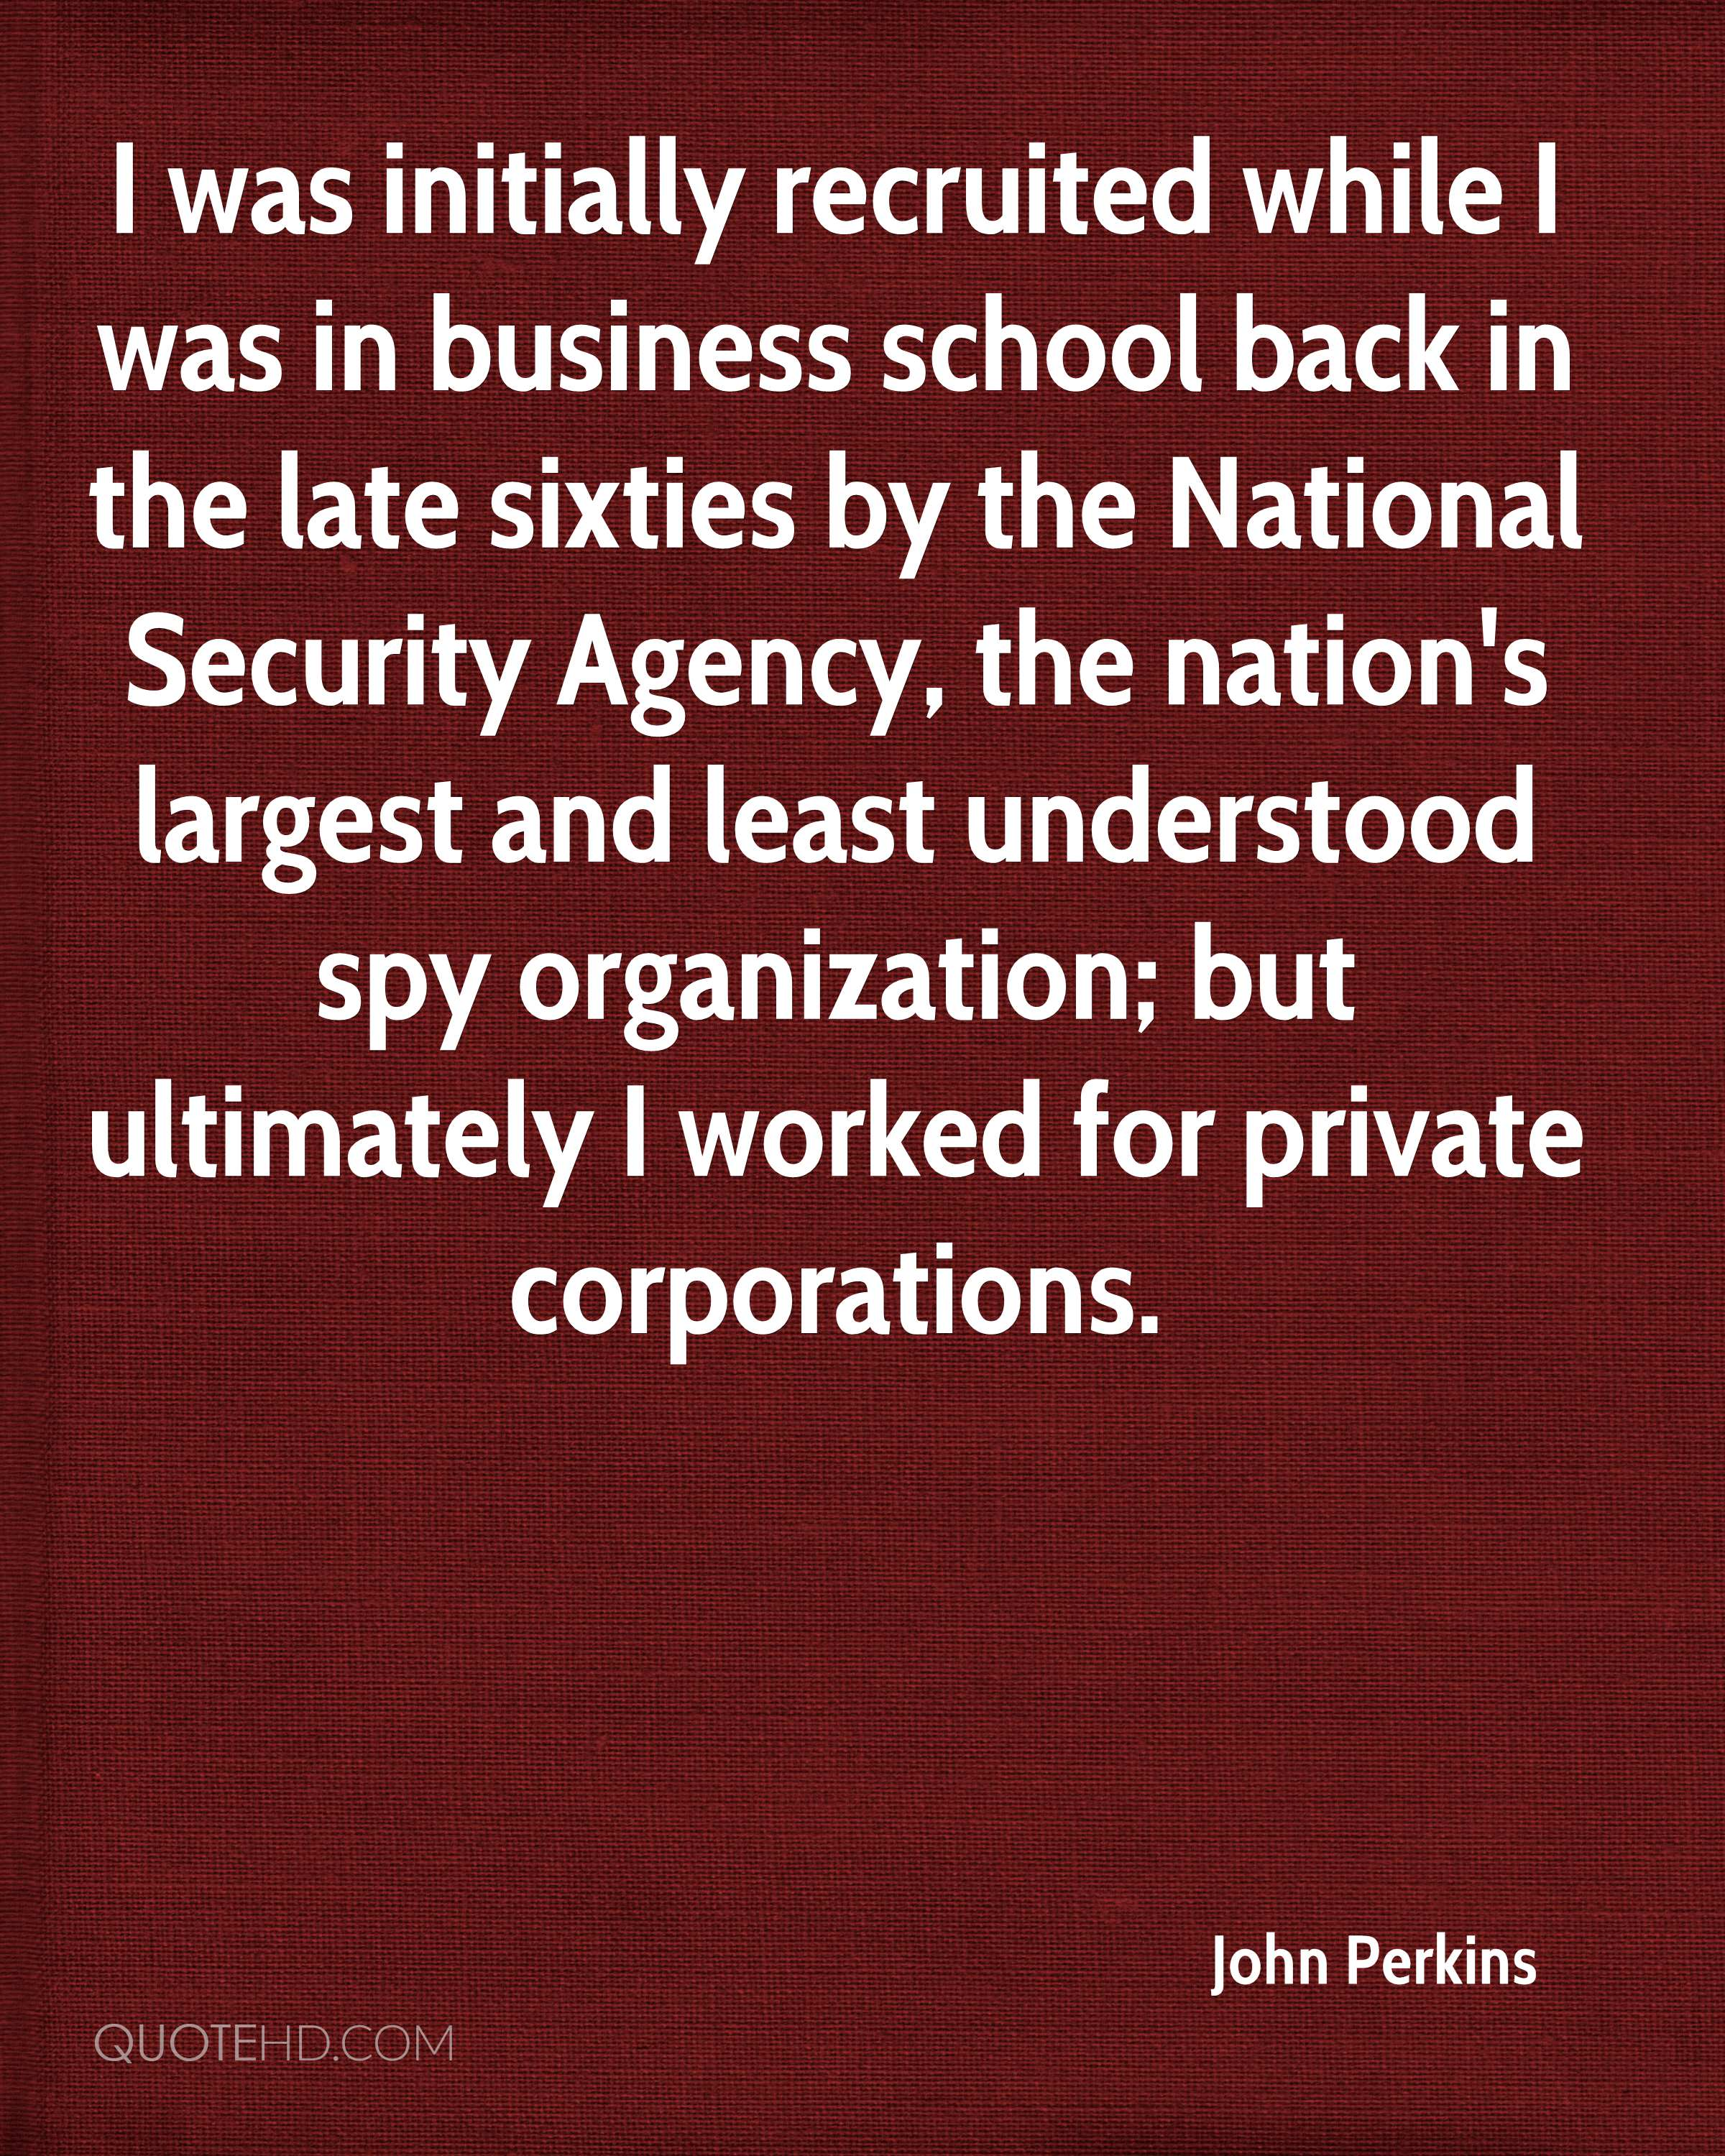 I was initially recruited while I was in business school back in the late sixties by the National Security Agency, the nation's largest and least understood spy organization; but ultimately I worked for private corporations.